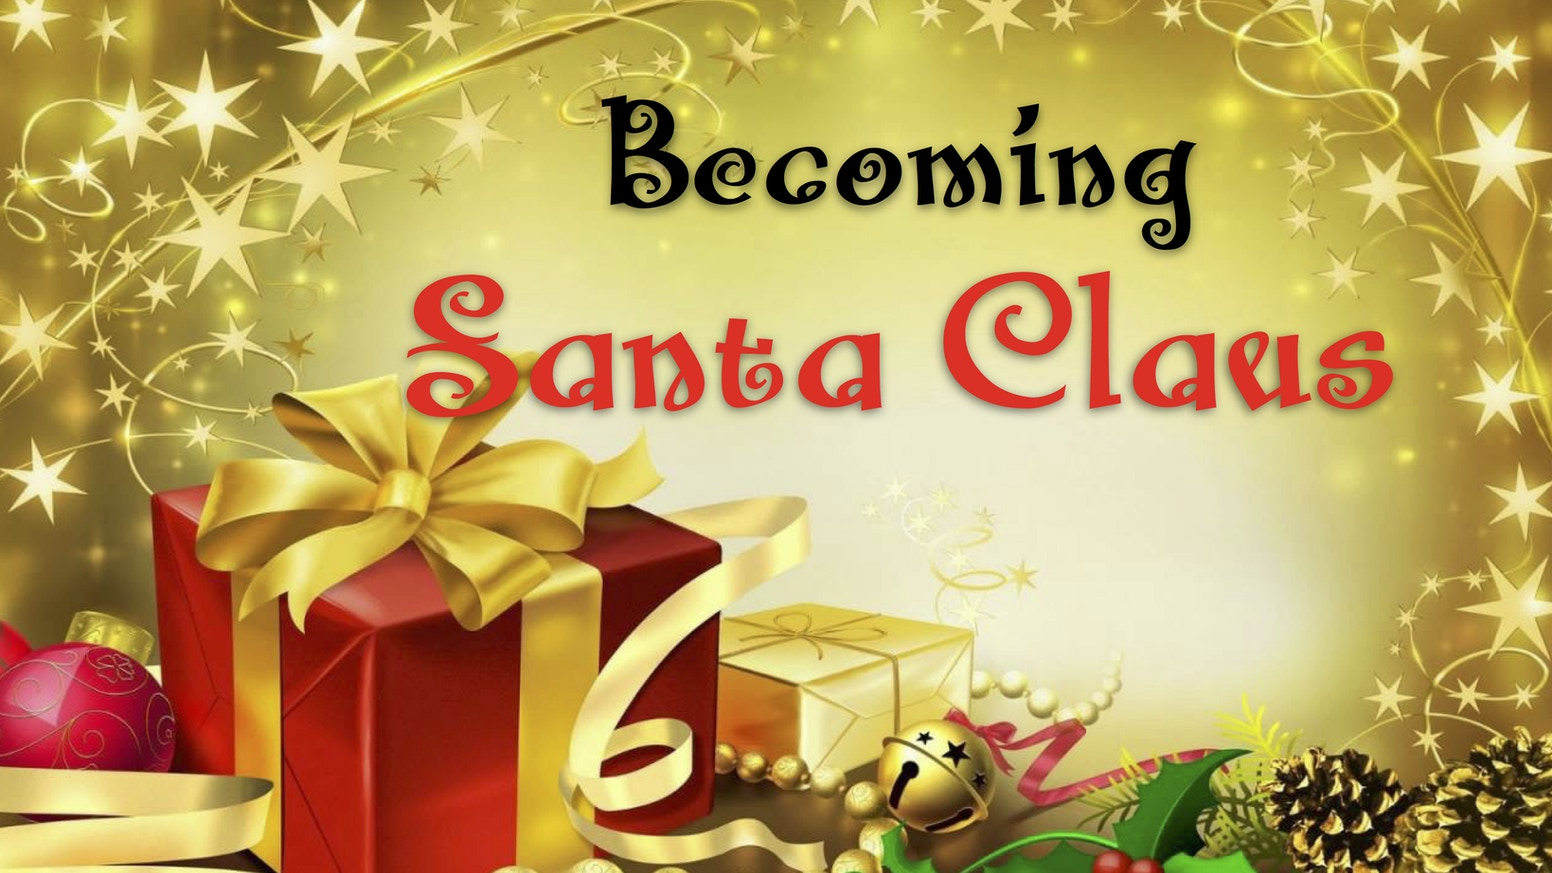 Becoming santa claus by santa jason kickstarter its time to become santa in 2018 assist me in bringing joy to others by m4hsunfo